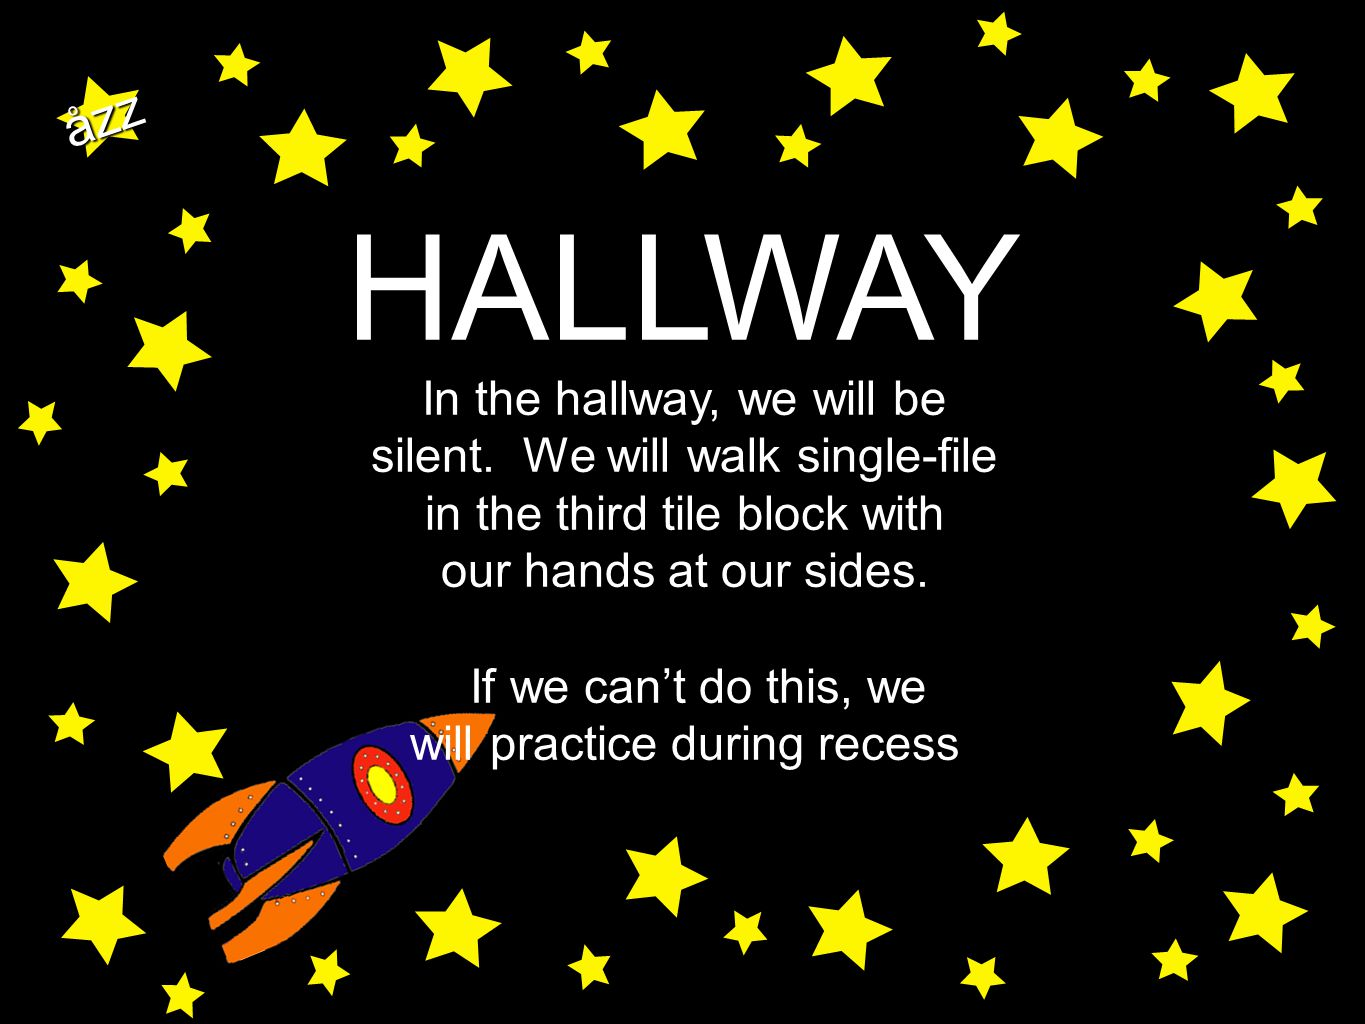 åzz HALLWAY In the hallway, we will be silent. We will walk single-file in the third tile block with our hands at our sides. If we can't do this, we w